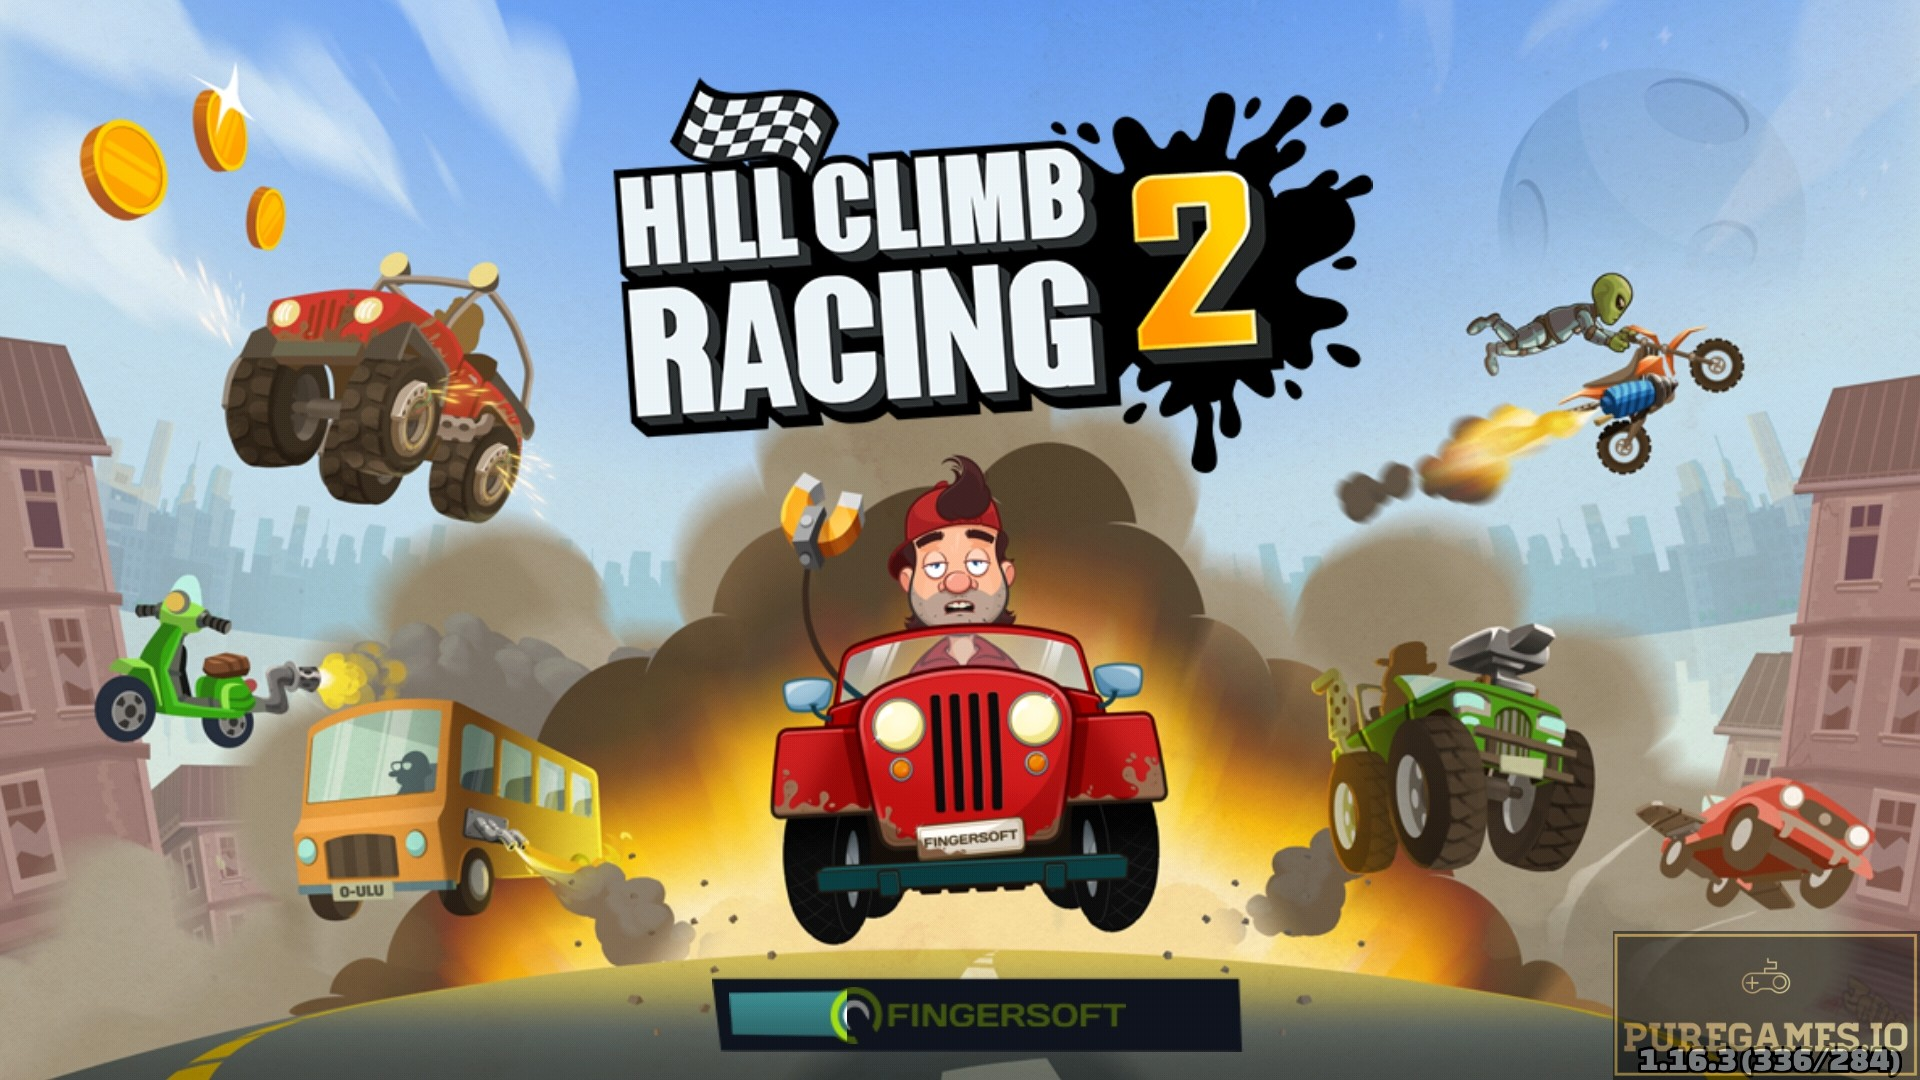 Download Hill Climb Racing 2 APK - For Android and iOS 5